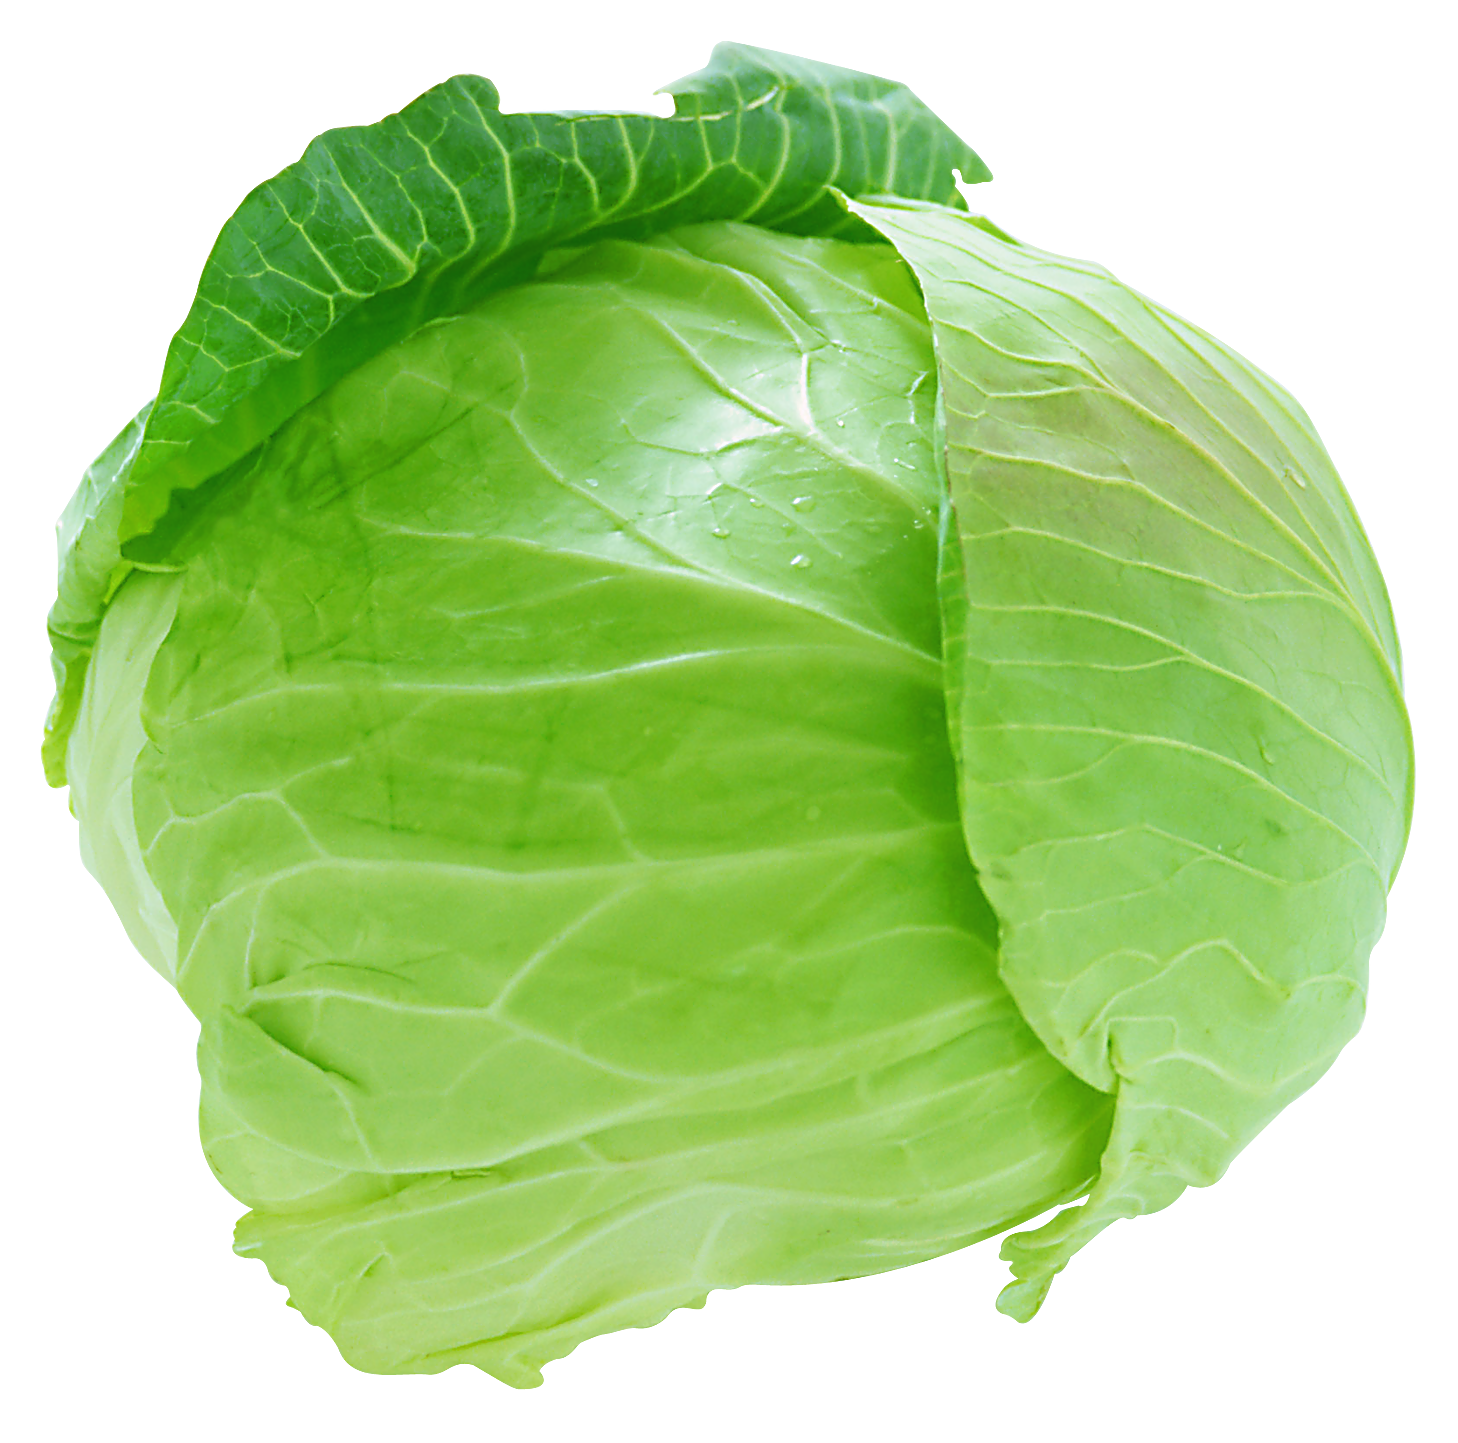 Green vegetables png. Fresh cabbage picture gallery